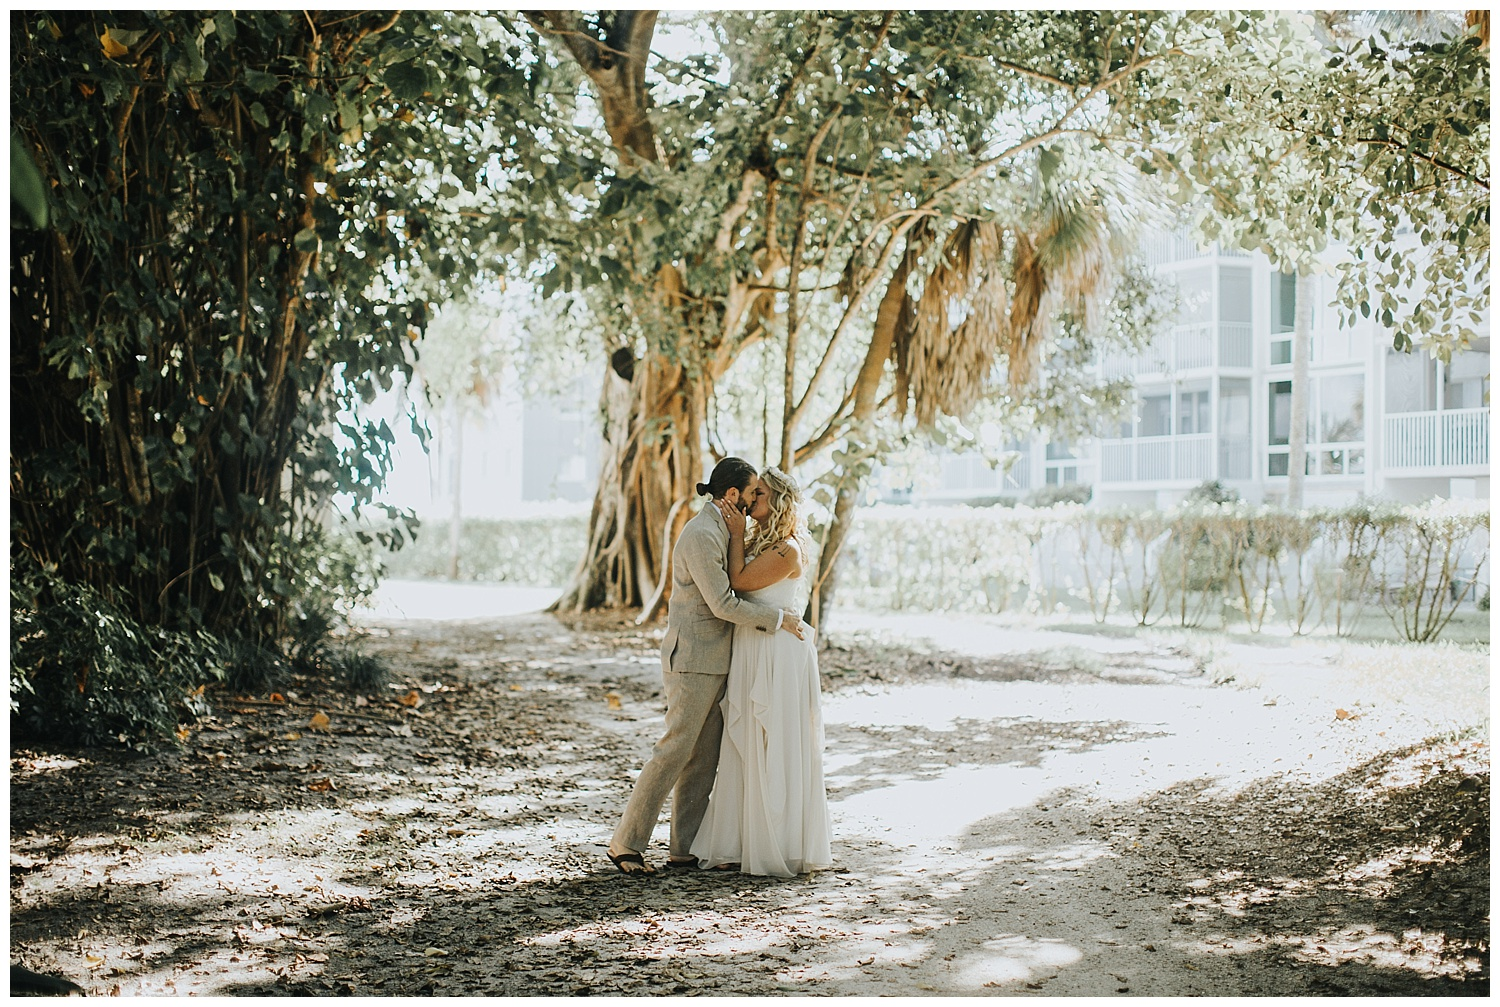 Kate+Blake_Sanibel_Island_Florida_Wedding_Varsity_Theatre_Russell_Heeter_Photography_0018.jpg